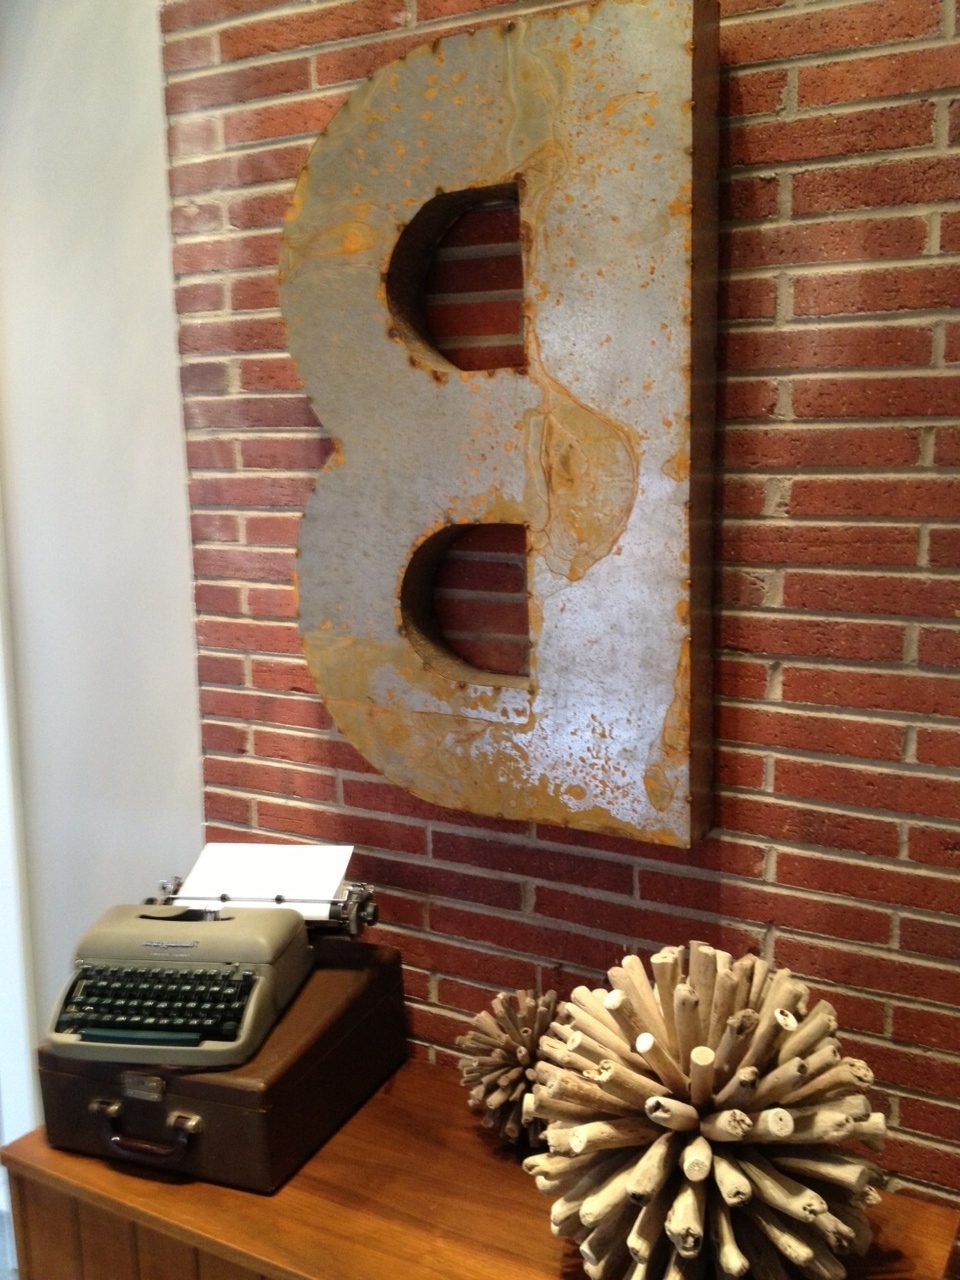 Most Current Metal Letter Wall Art With Regard To 42 Metal Letter Wall Art, Vintage Distressed Metal Sign Letter G (View 10 of 15)